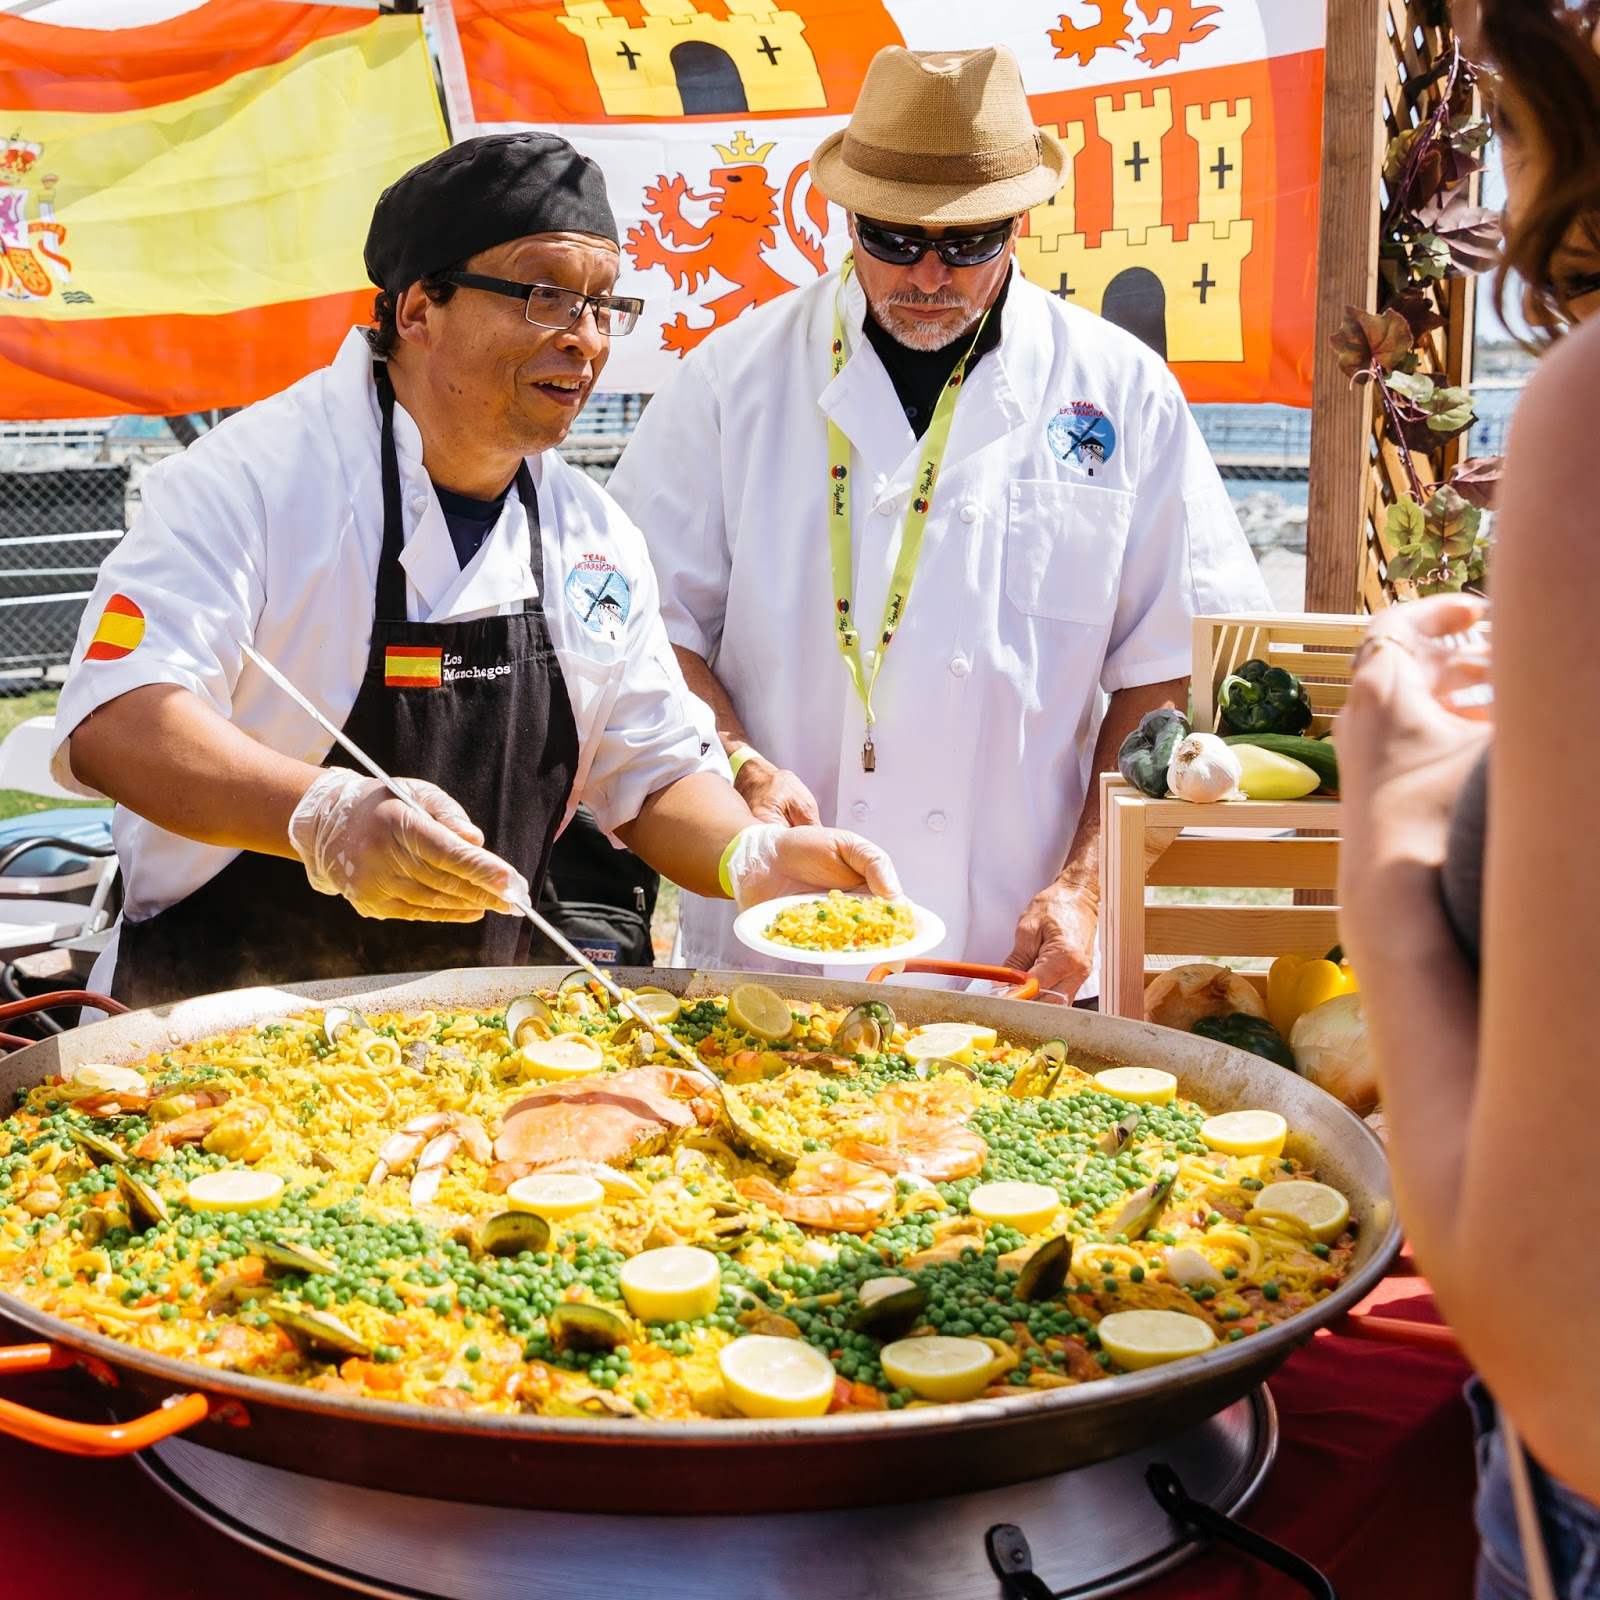 Aug 26 | Enjoy Unlimited Alcohol and Paella @ The Paella Wine & Beer Festival - Costa Mesa